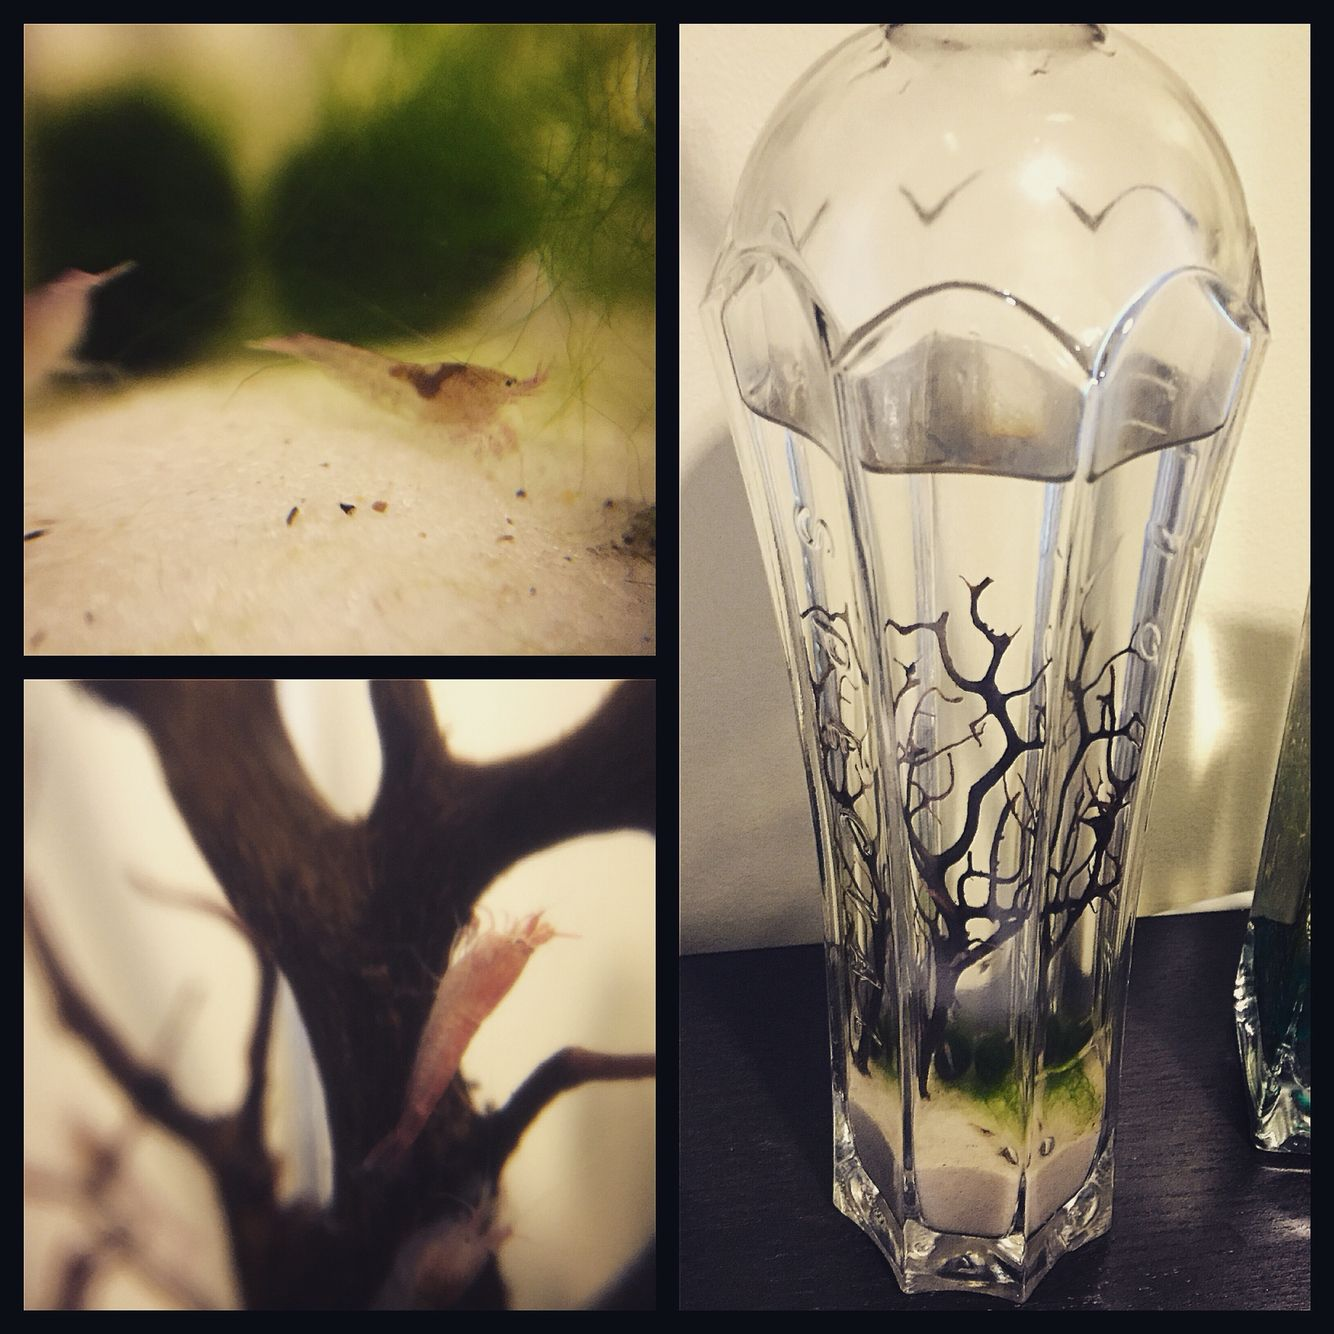 Ecosphere marketing materials chikaboo designs - Diy Closed Ecosystem Made Using A St Germain Bottle Opae Ula Shrimp Same